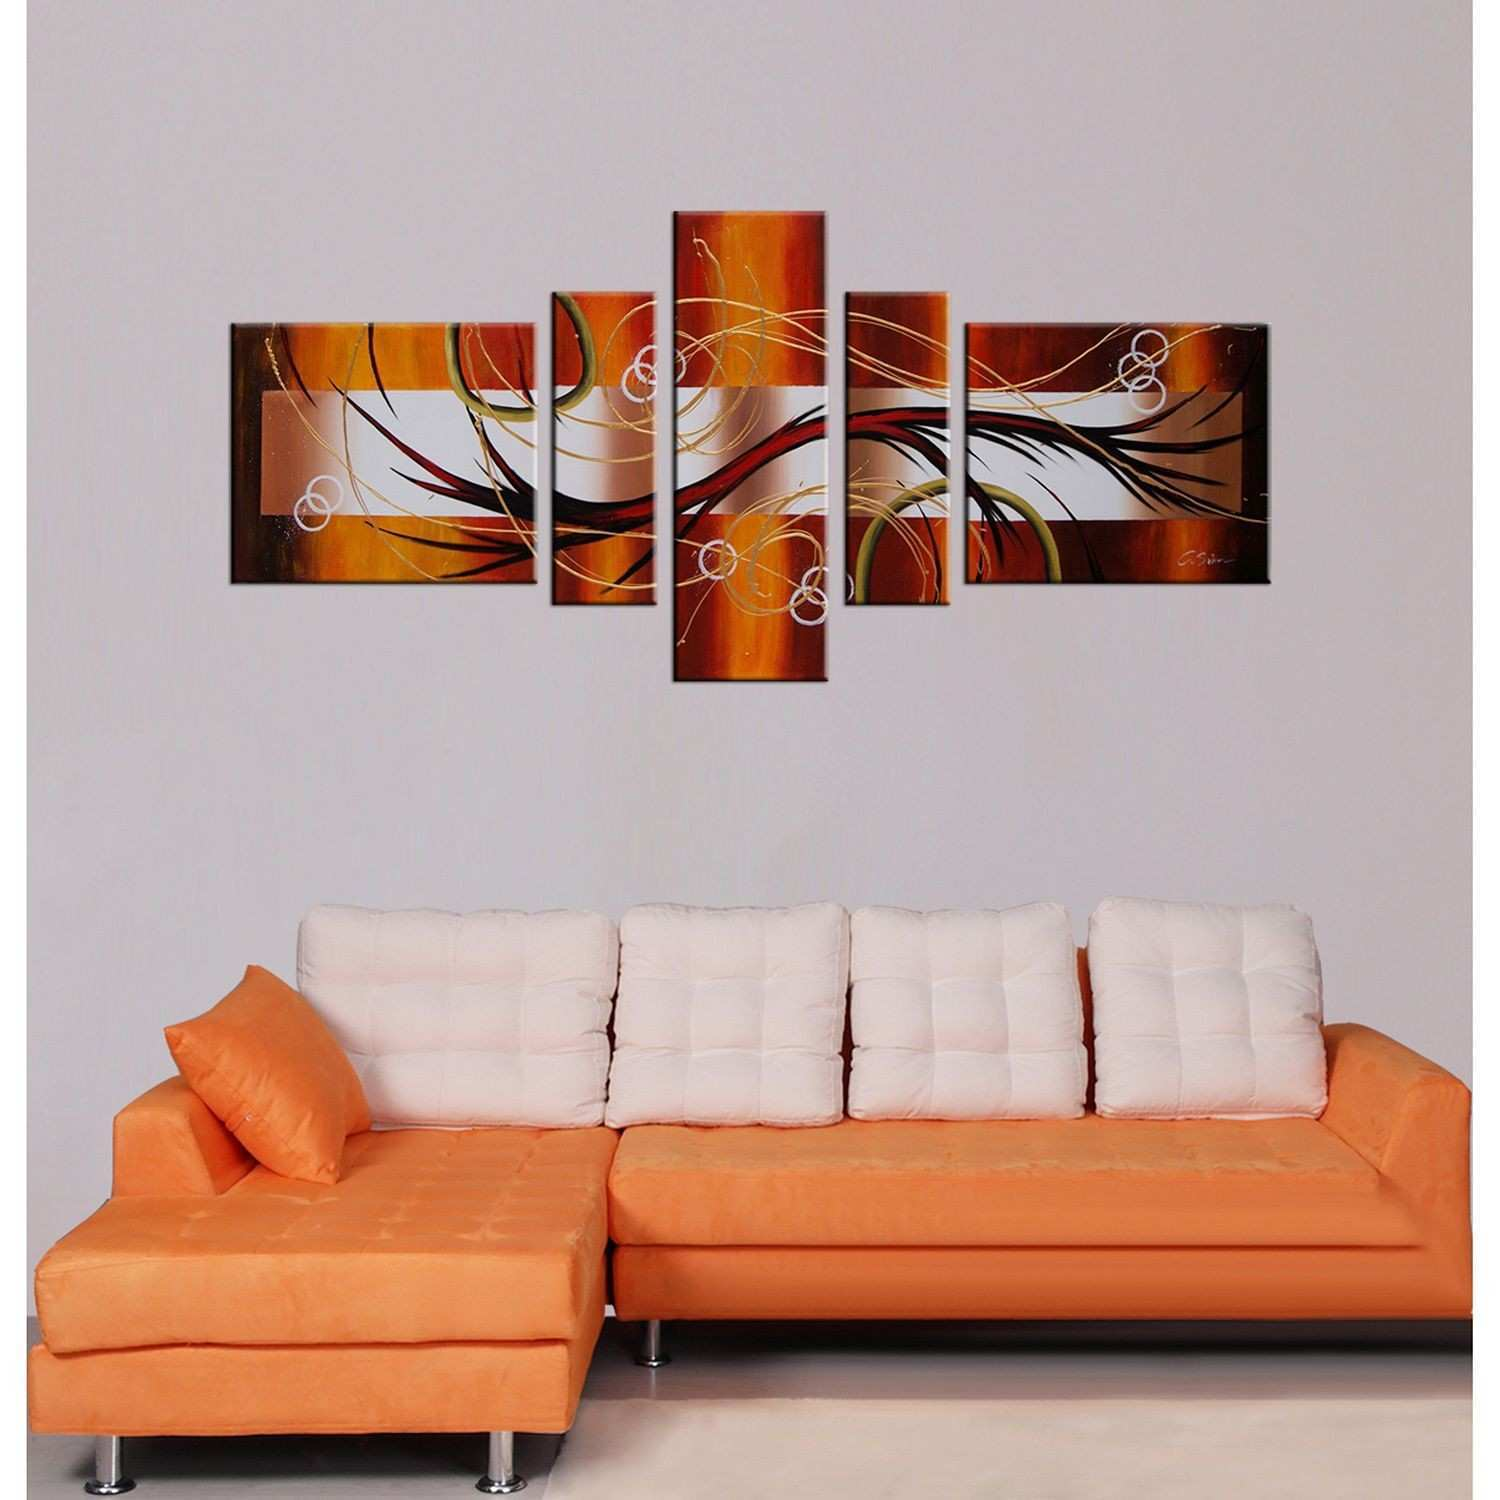 Fill the space on a large wall with this five piece oversized wall